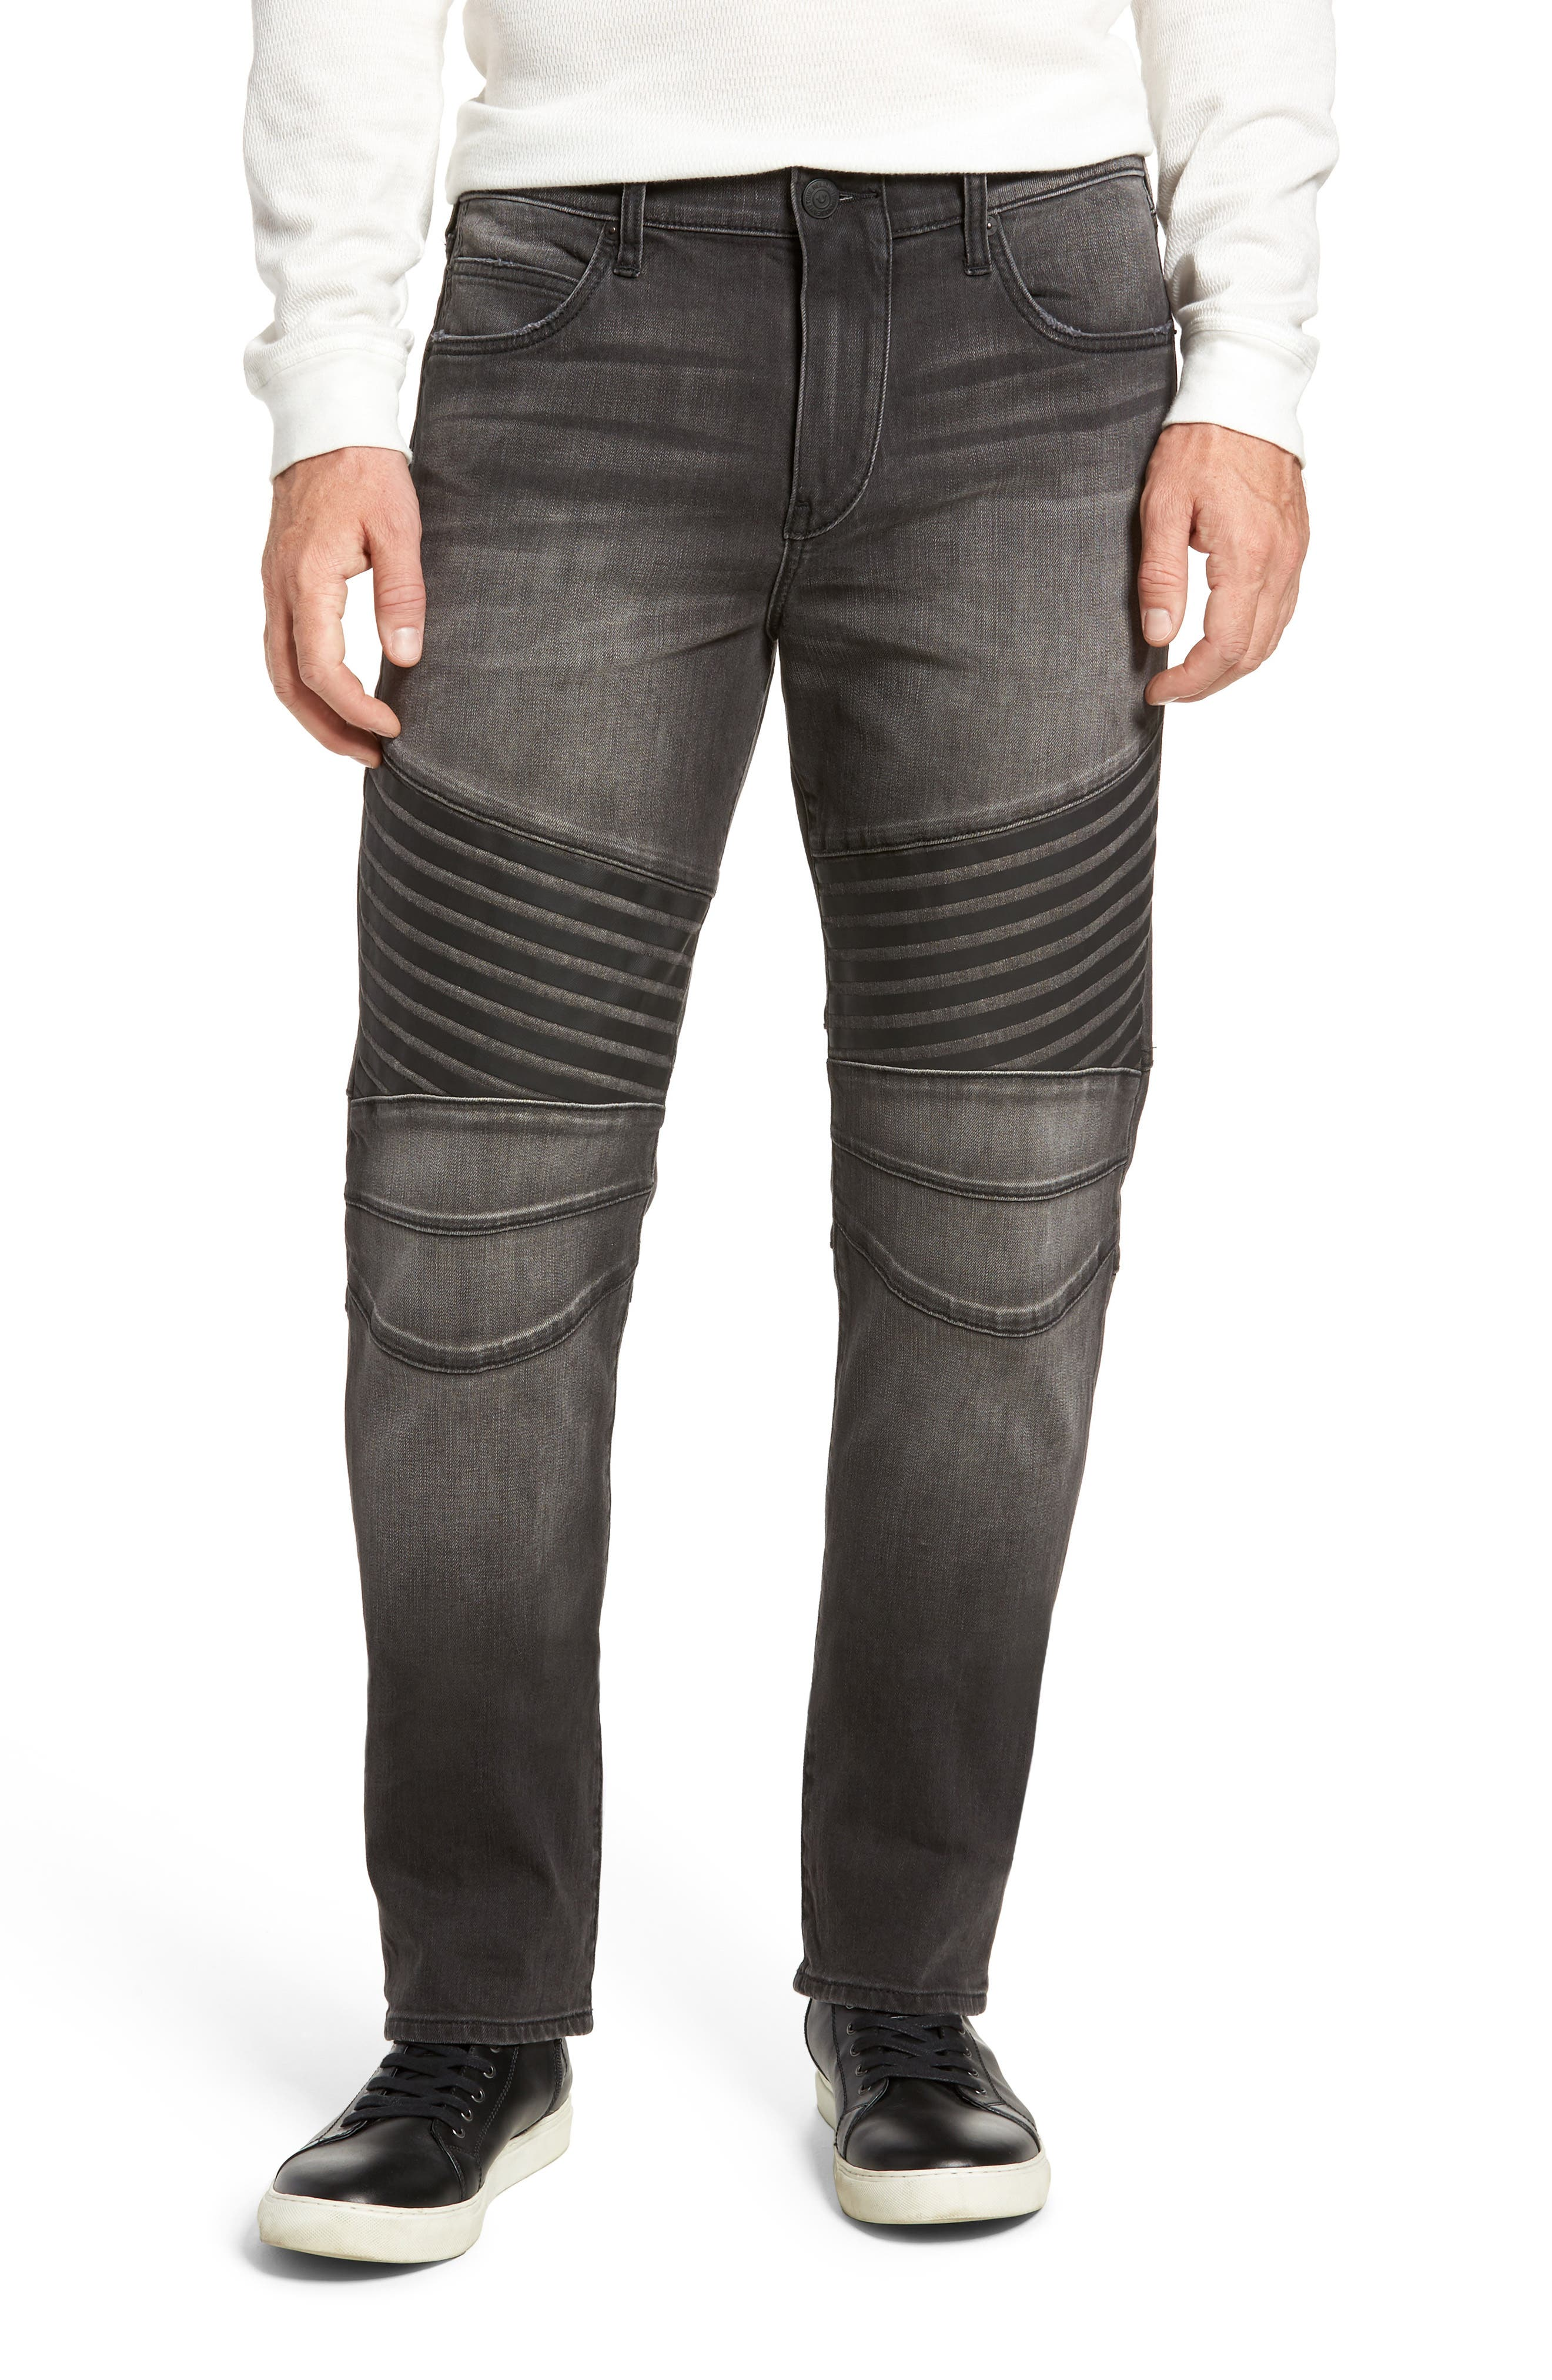 Alternate Image 1 Selected - True Religion Brand Jeans Geno Straight Leg Jeans (Dark Rebel Race)